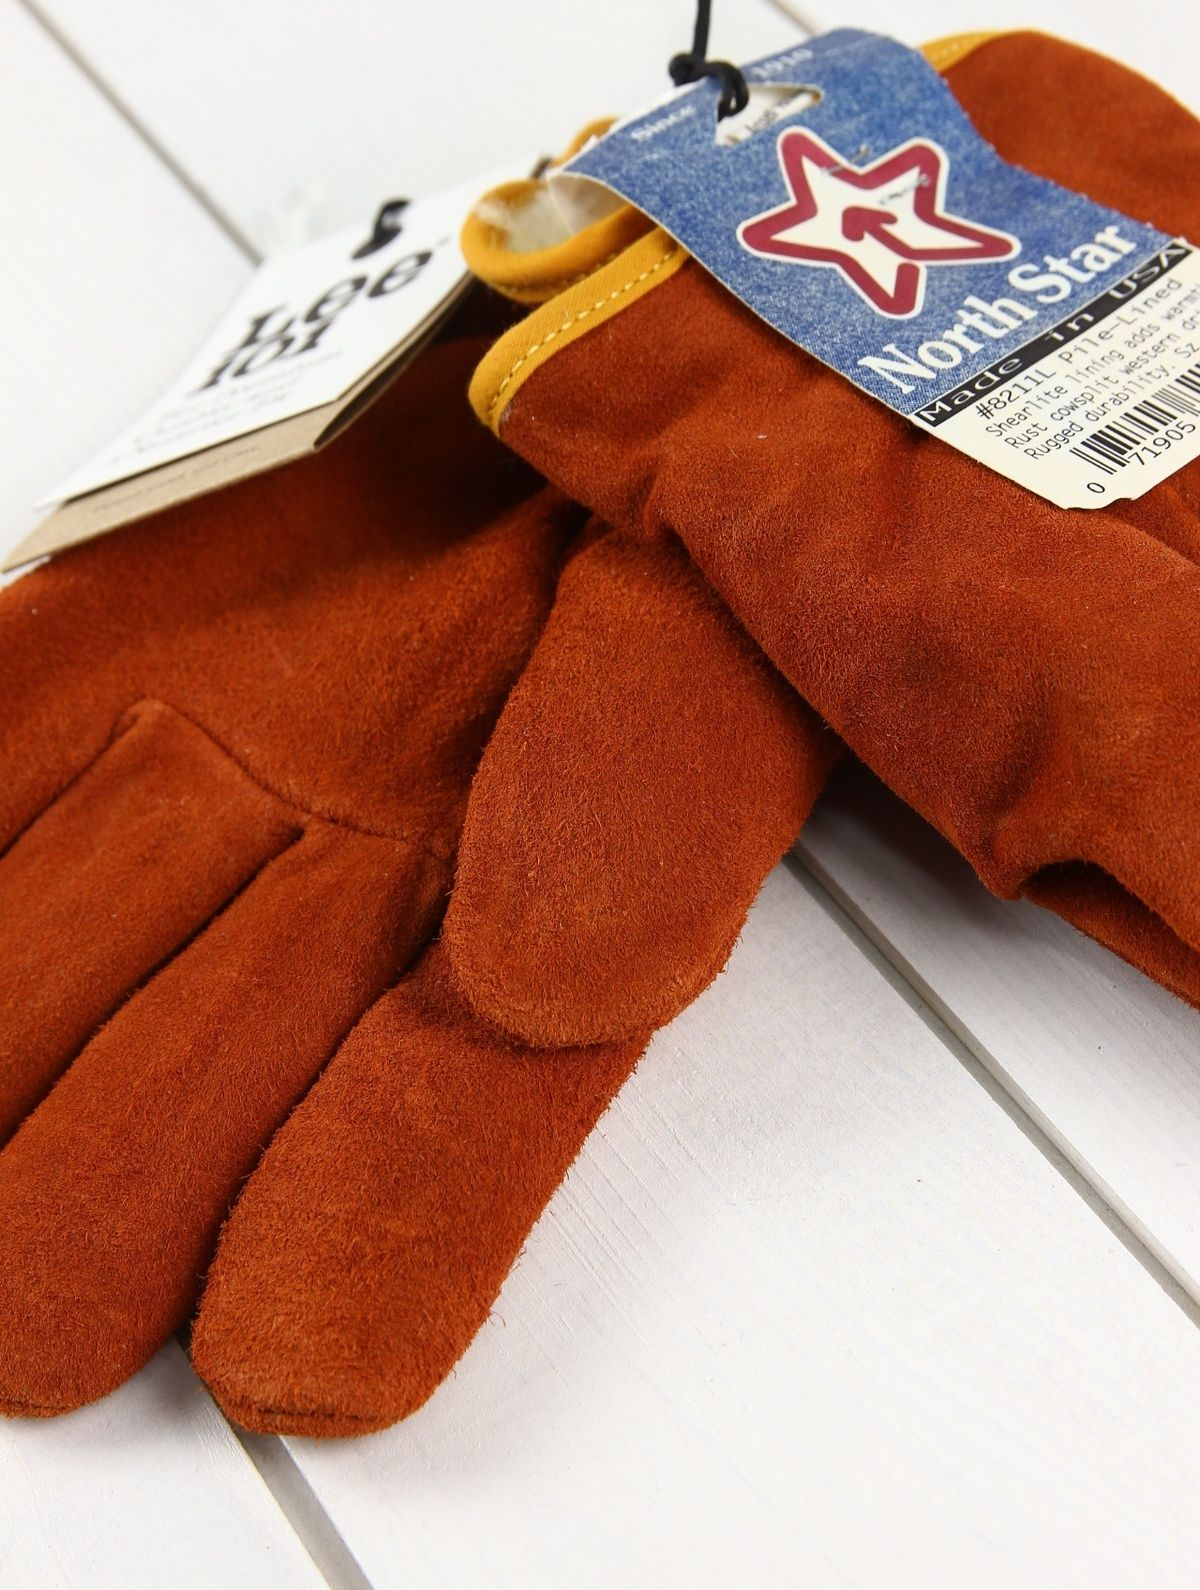 NEW LEE 101 & NORTH STAR Made In USA LEATHER GLOVES LINED